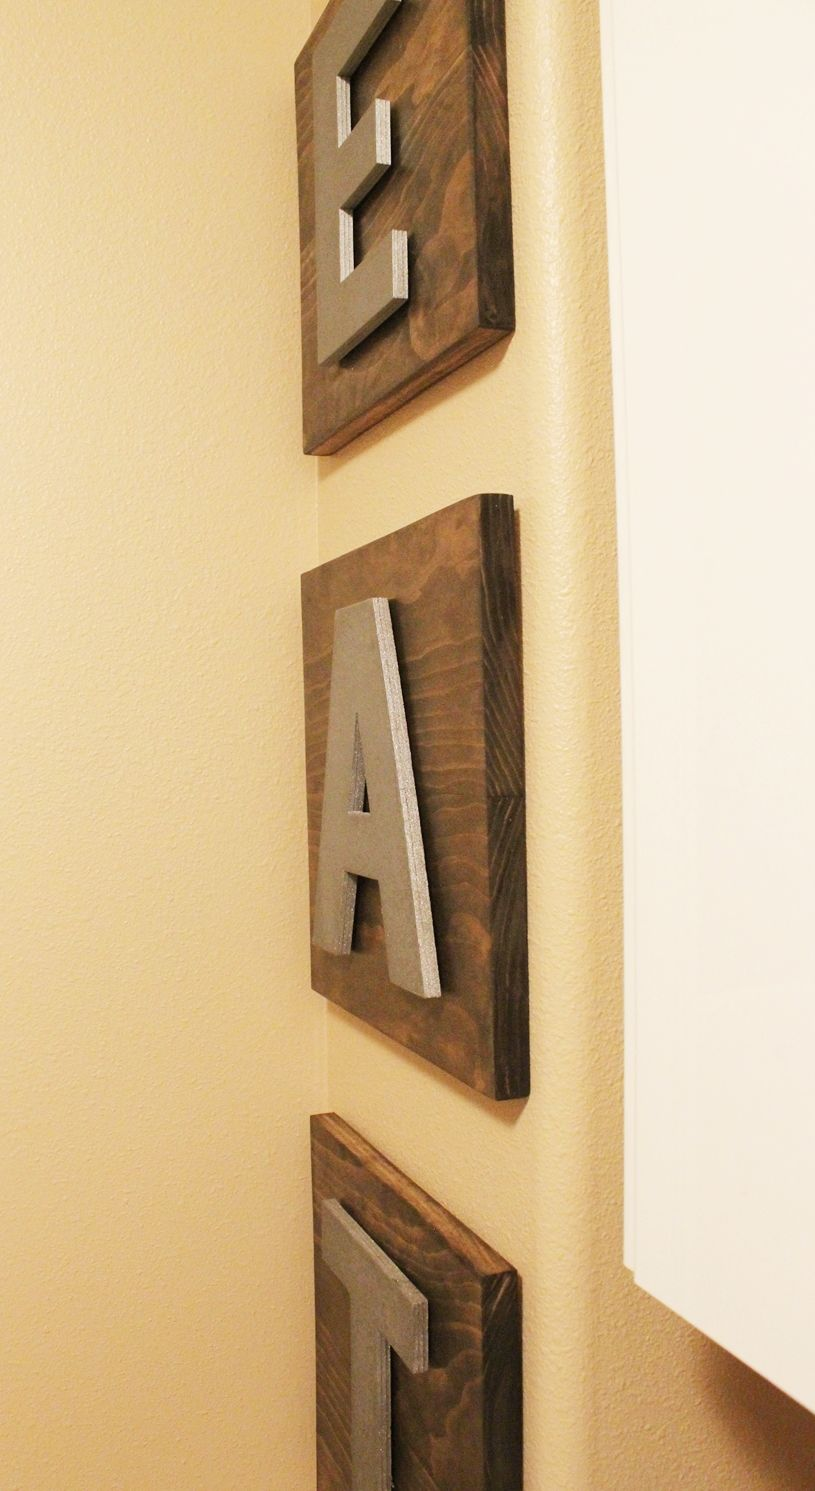 diy-eat-kitchen-decor-3d-spacing